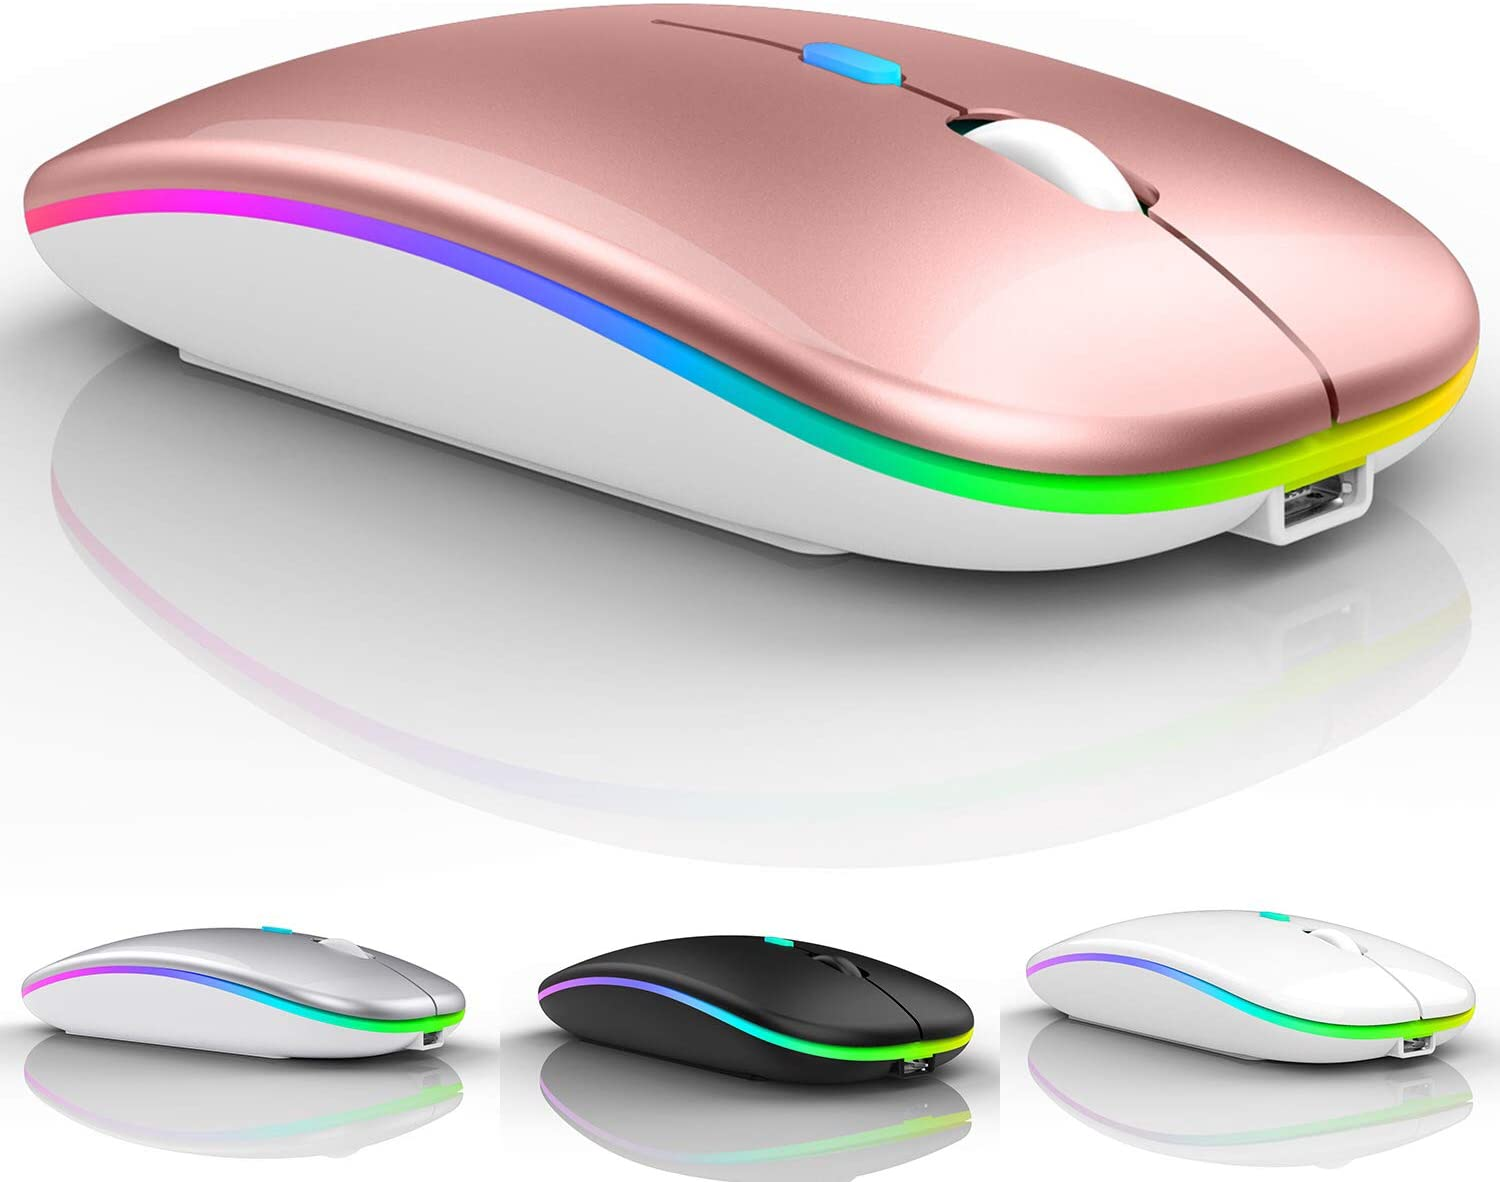 LED Wireless Mouse,Wireless Mouse for MacBook pro/air/pc/Laptop,2.4G Portable USB Optical Wireless Computer Mice with USB Receiver and Type C Adapter (Rose Gold)